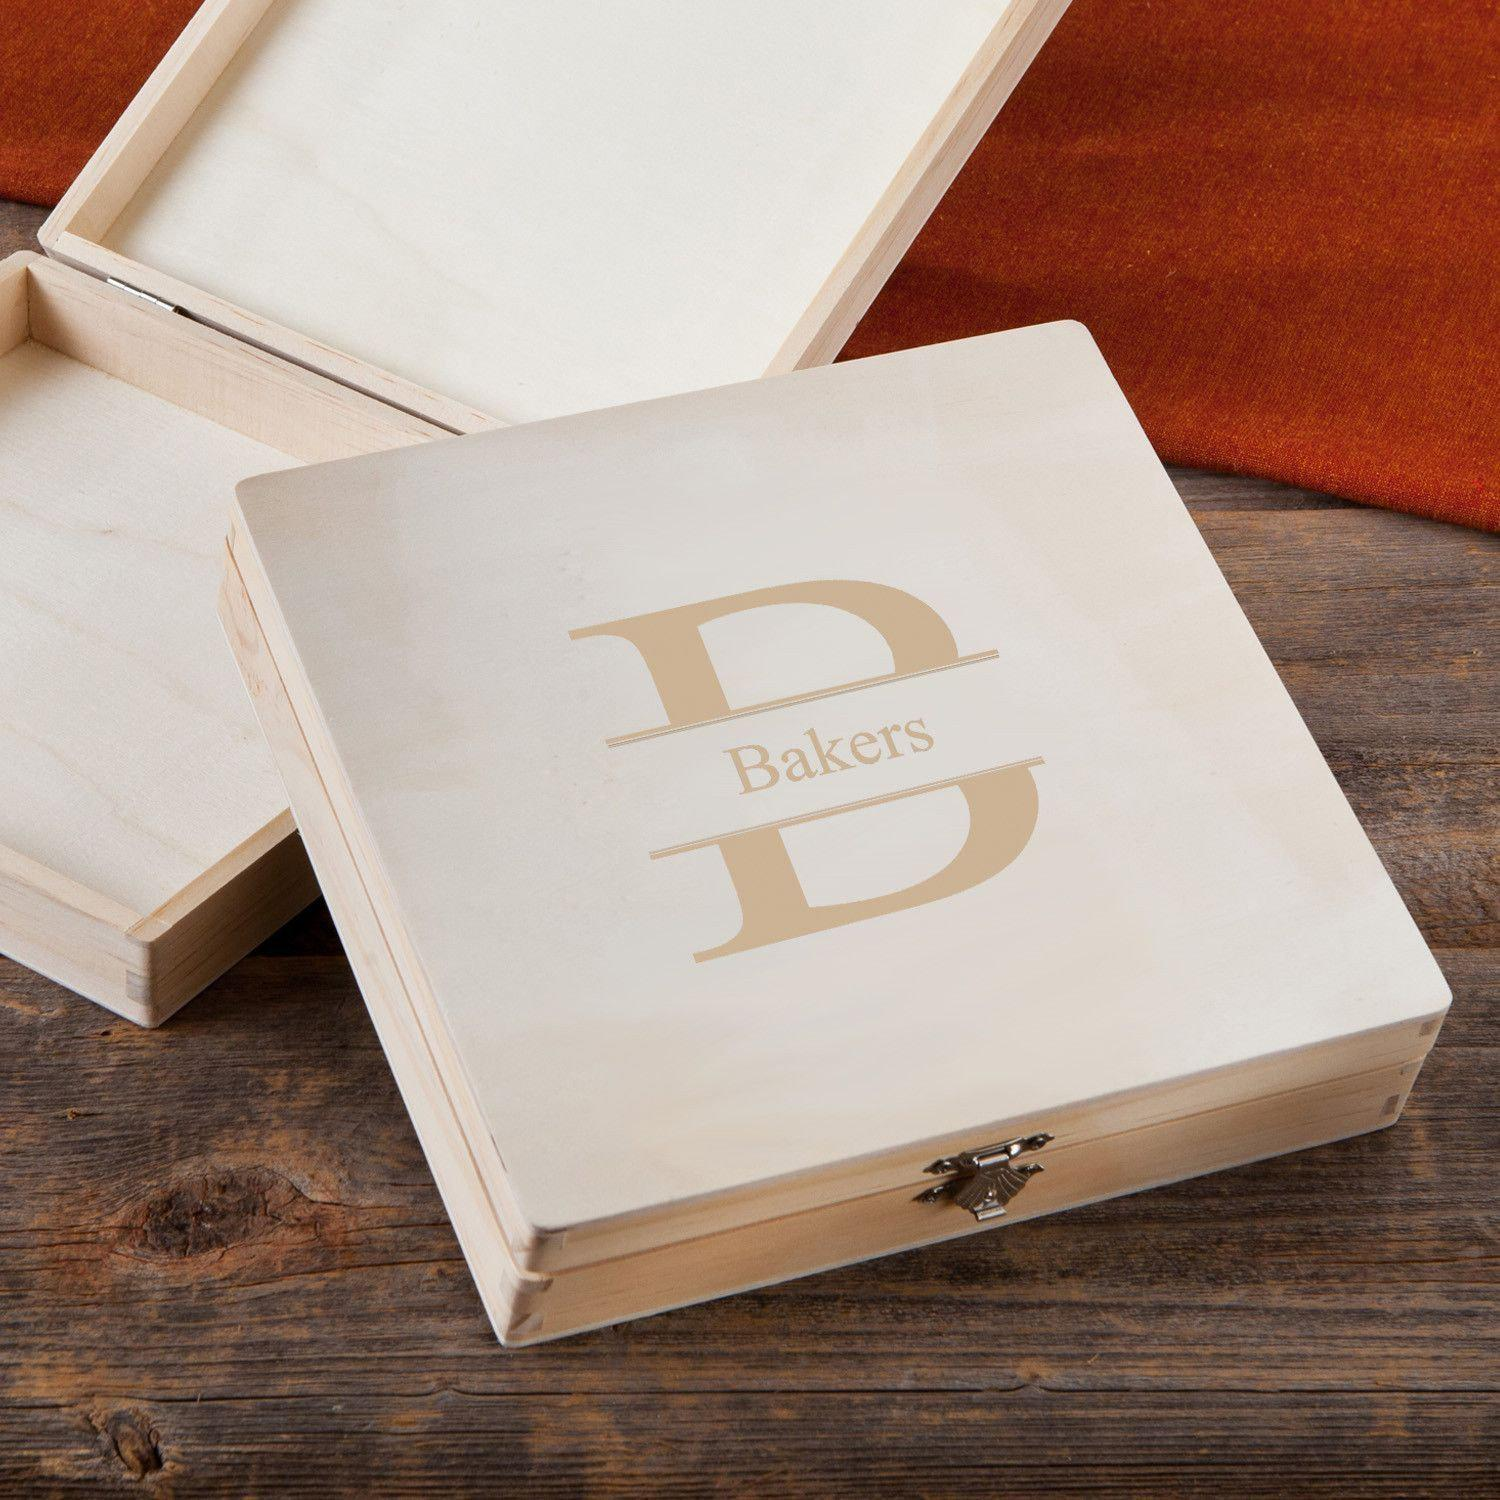 Personalized-Humidor-Wooden-Keepsake-Groomsmen-Gifts